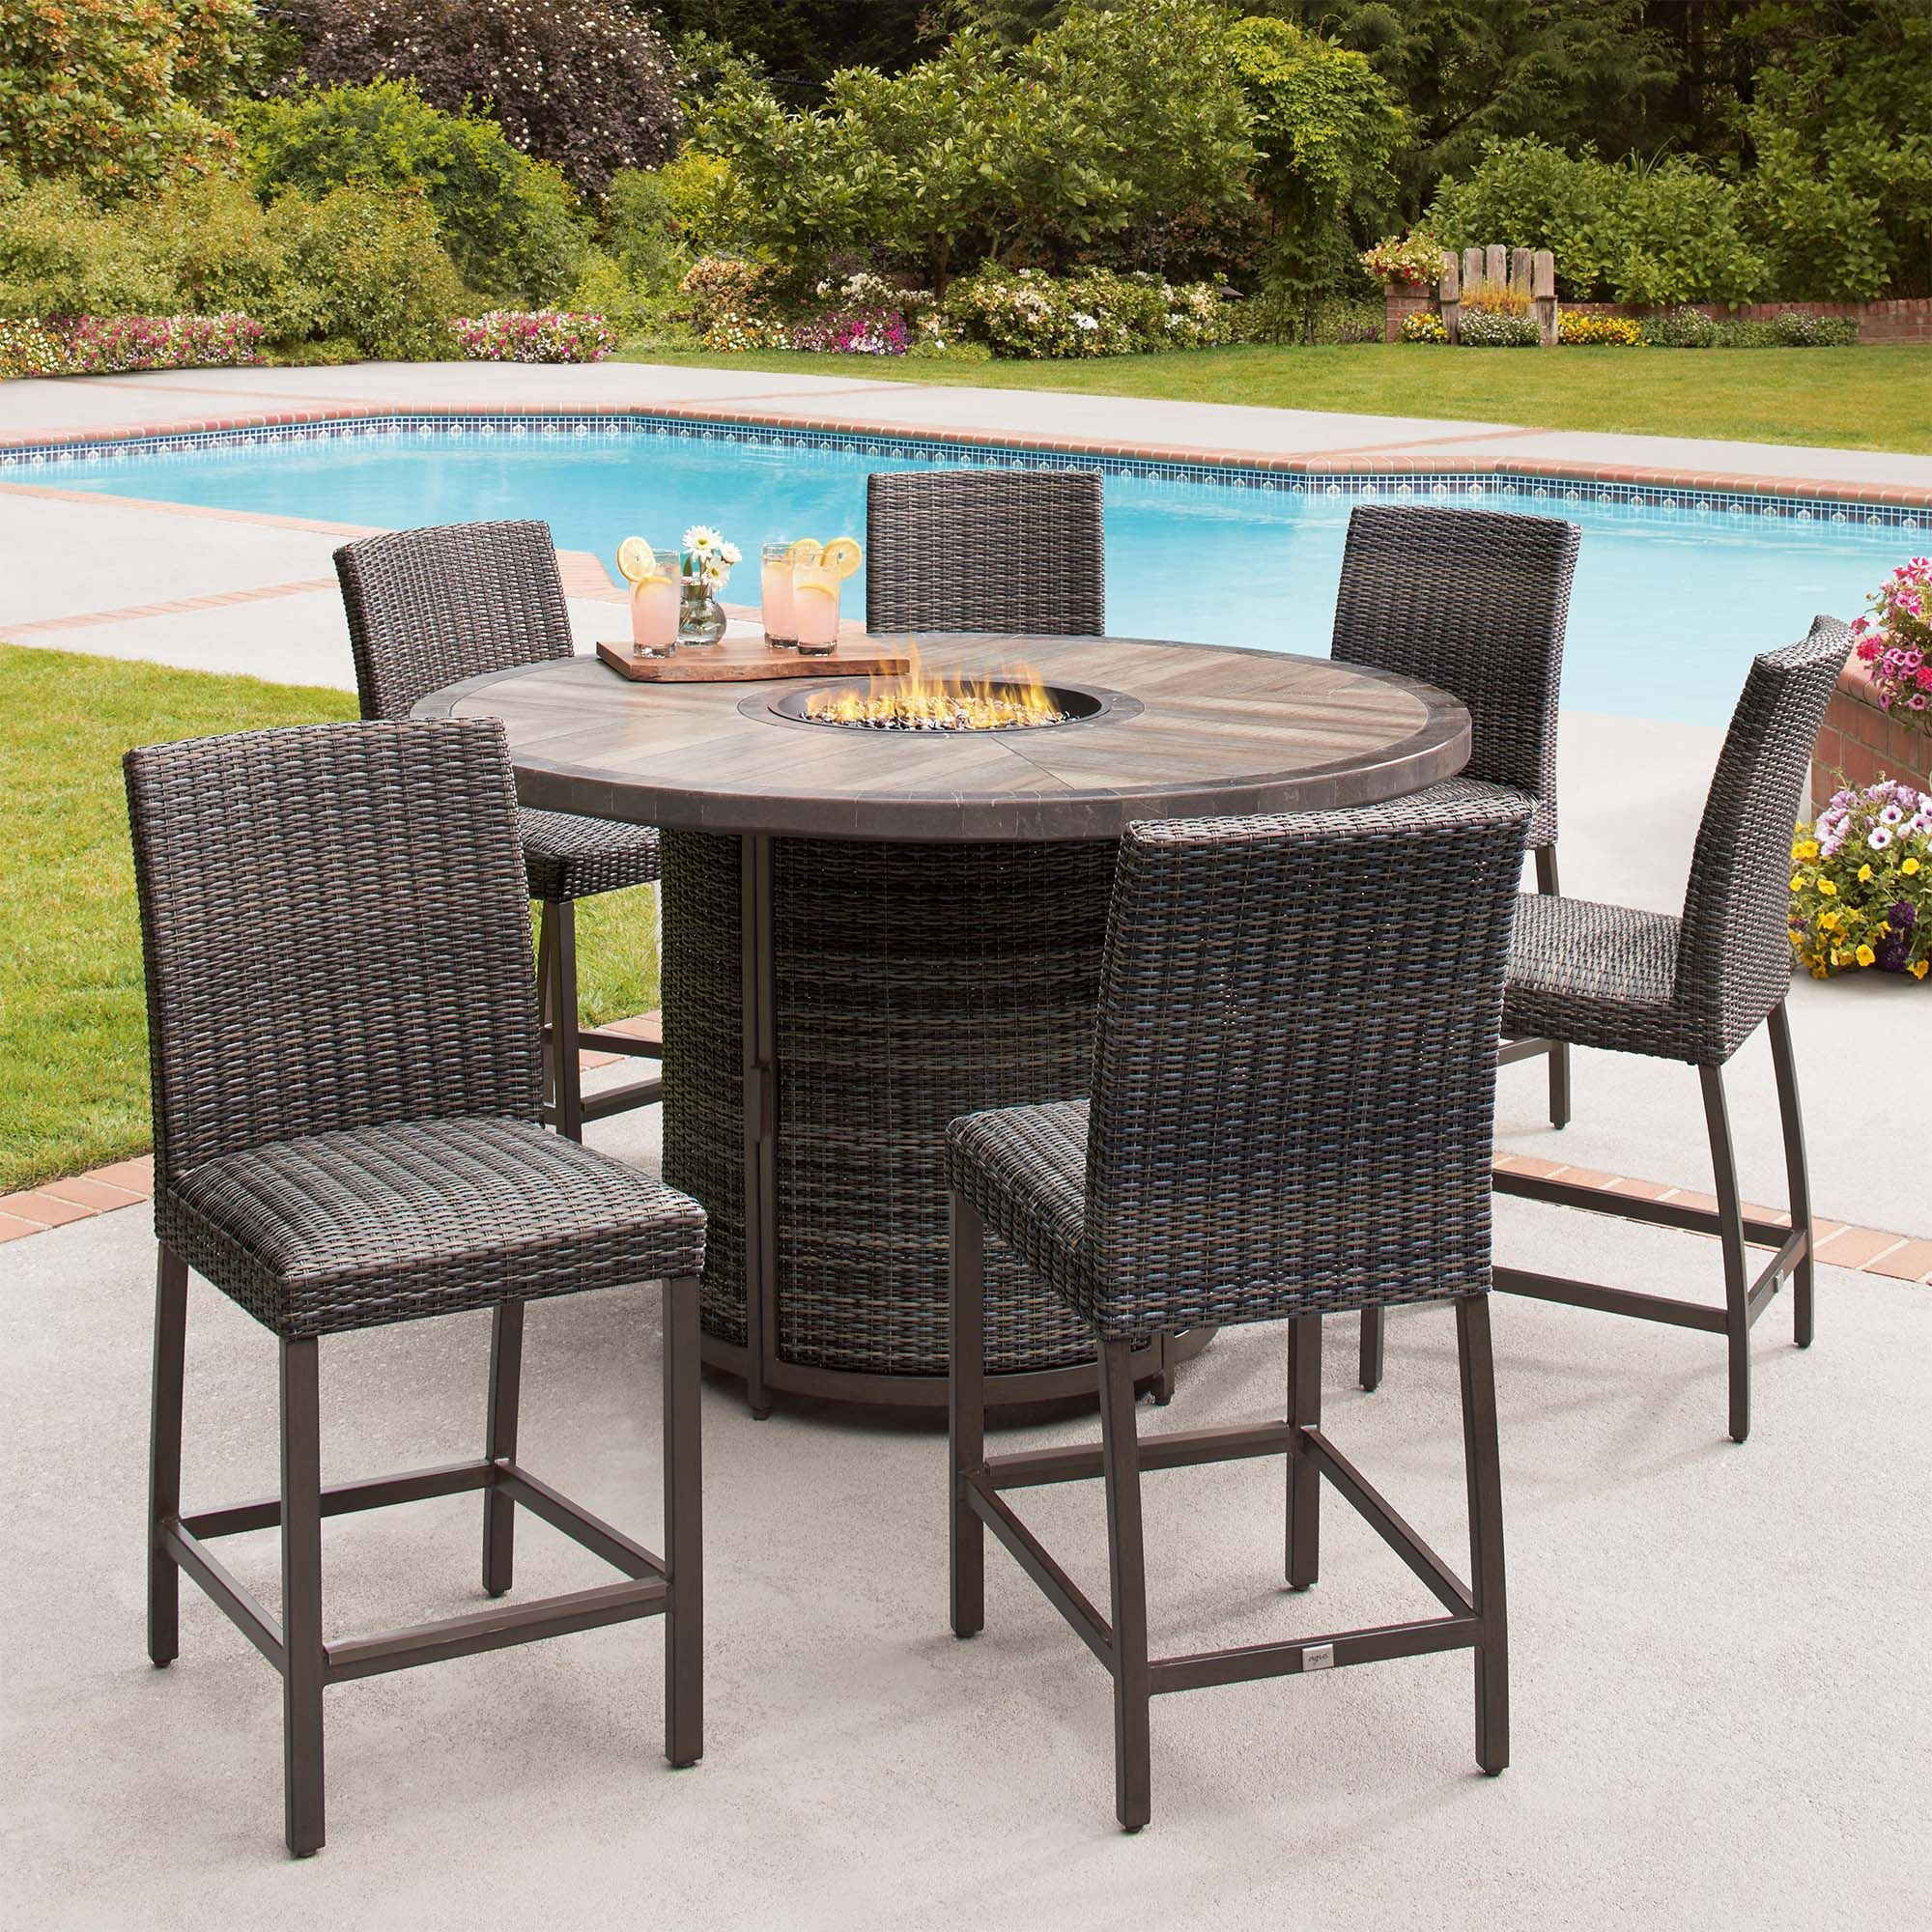 Its time to take your entertaining to new heights with the st louis 7 piece woven high dining fire set take the party well into the night with the